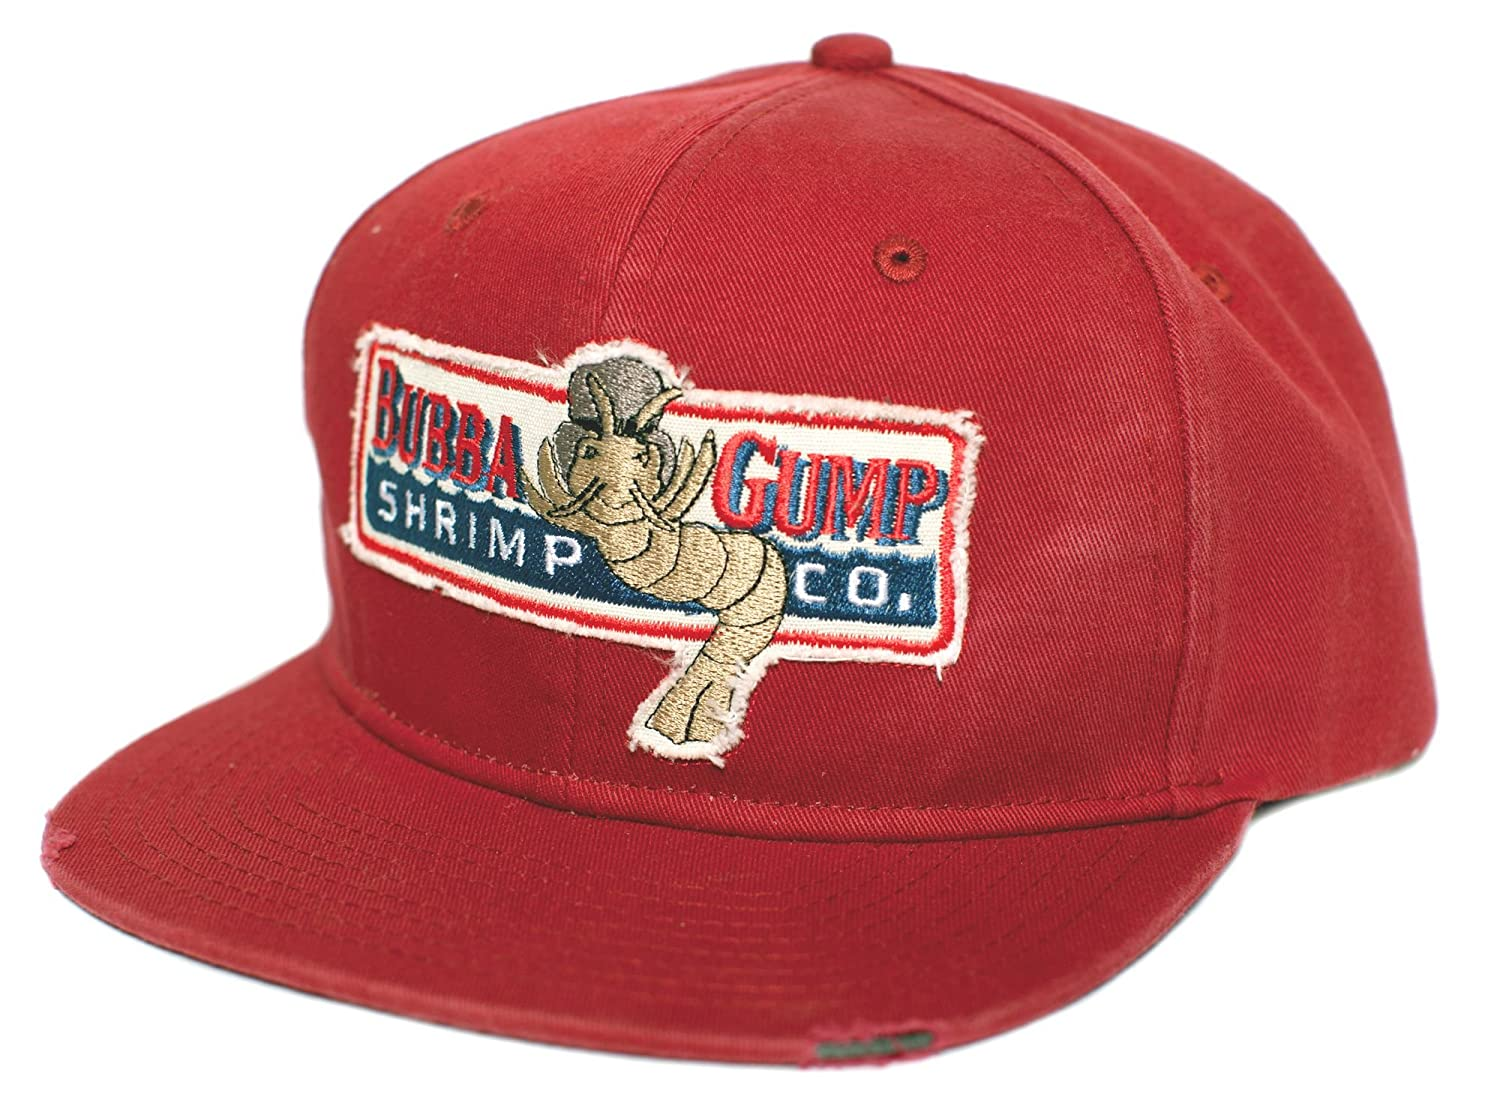 Bubba Gump Shrimp Co Unisex Adult One Size Embroidered Distressed  # Muebles Ros Bubua